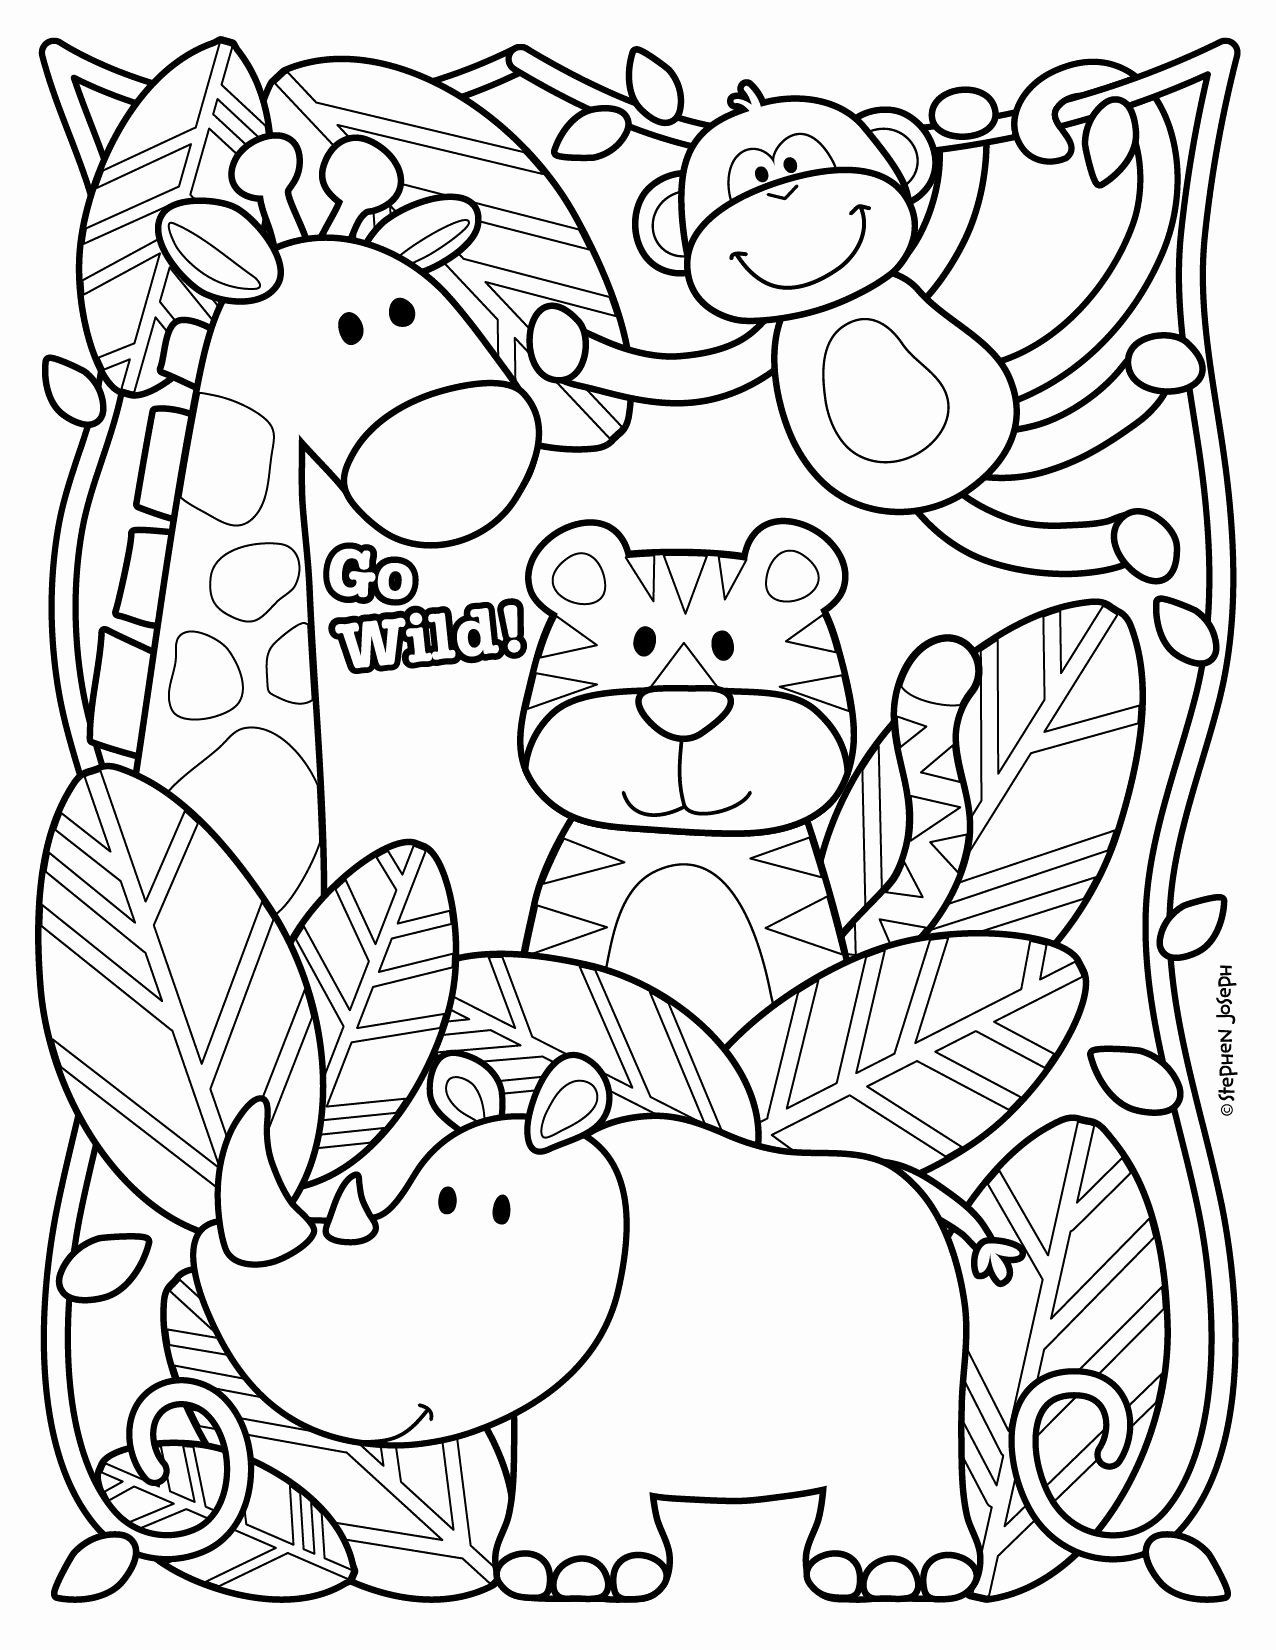 coloring pages zoo coloring sheet zoo animals in 2020 with images zoo pages zoo coloring